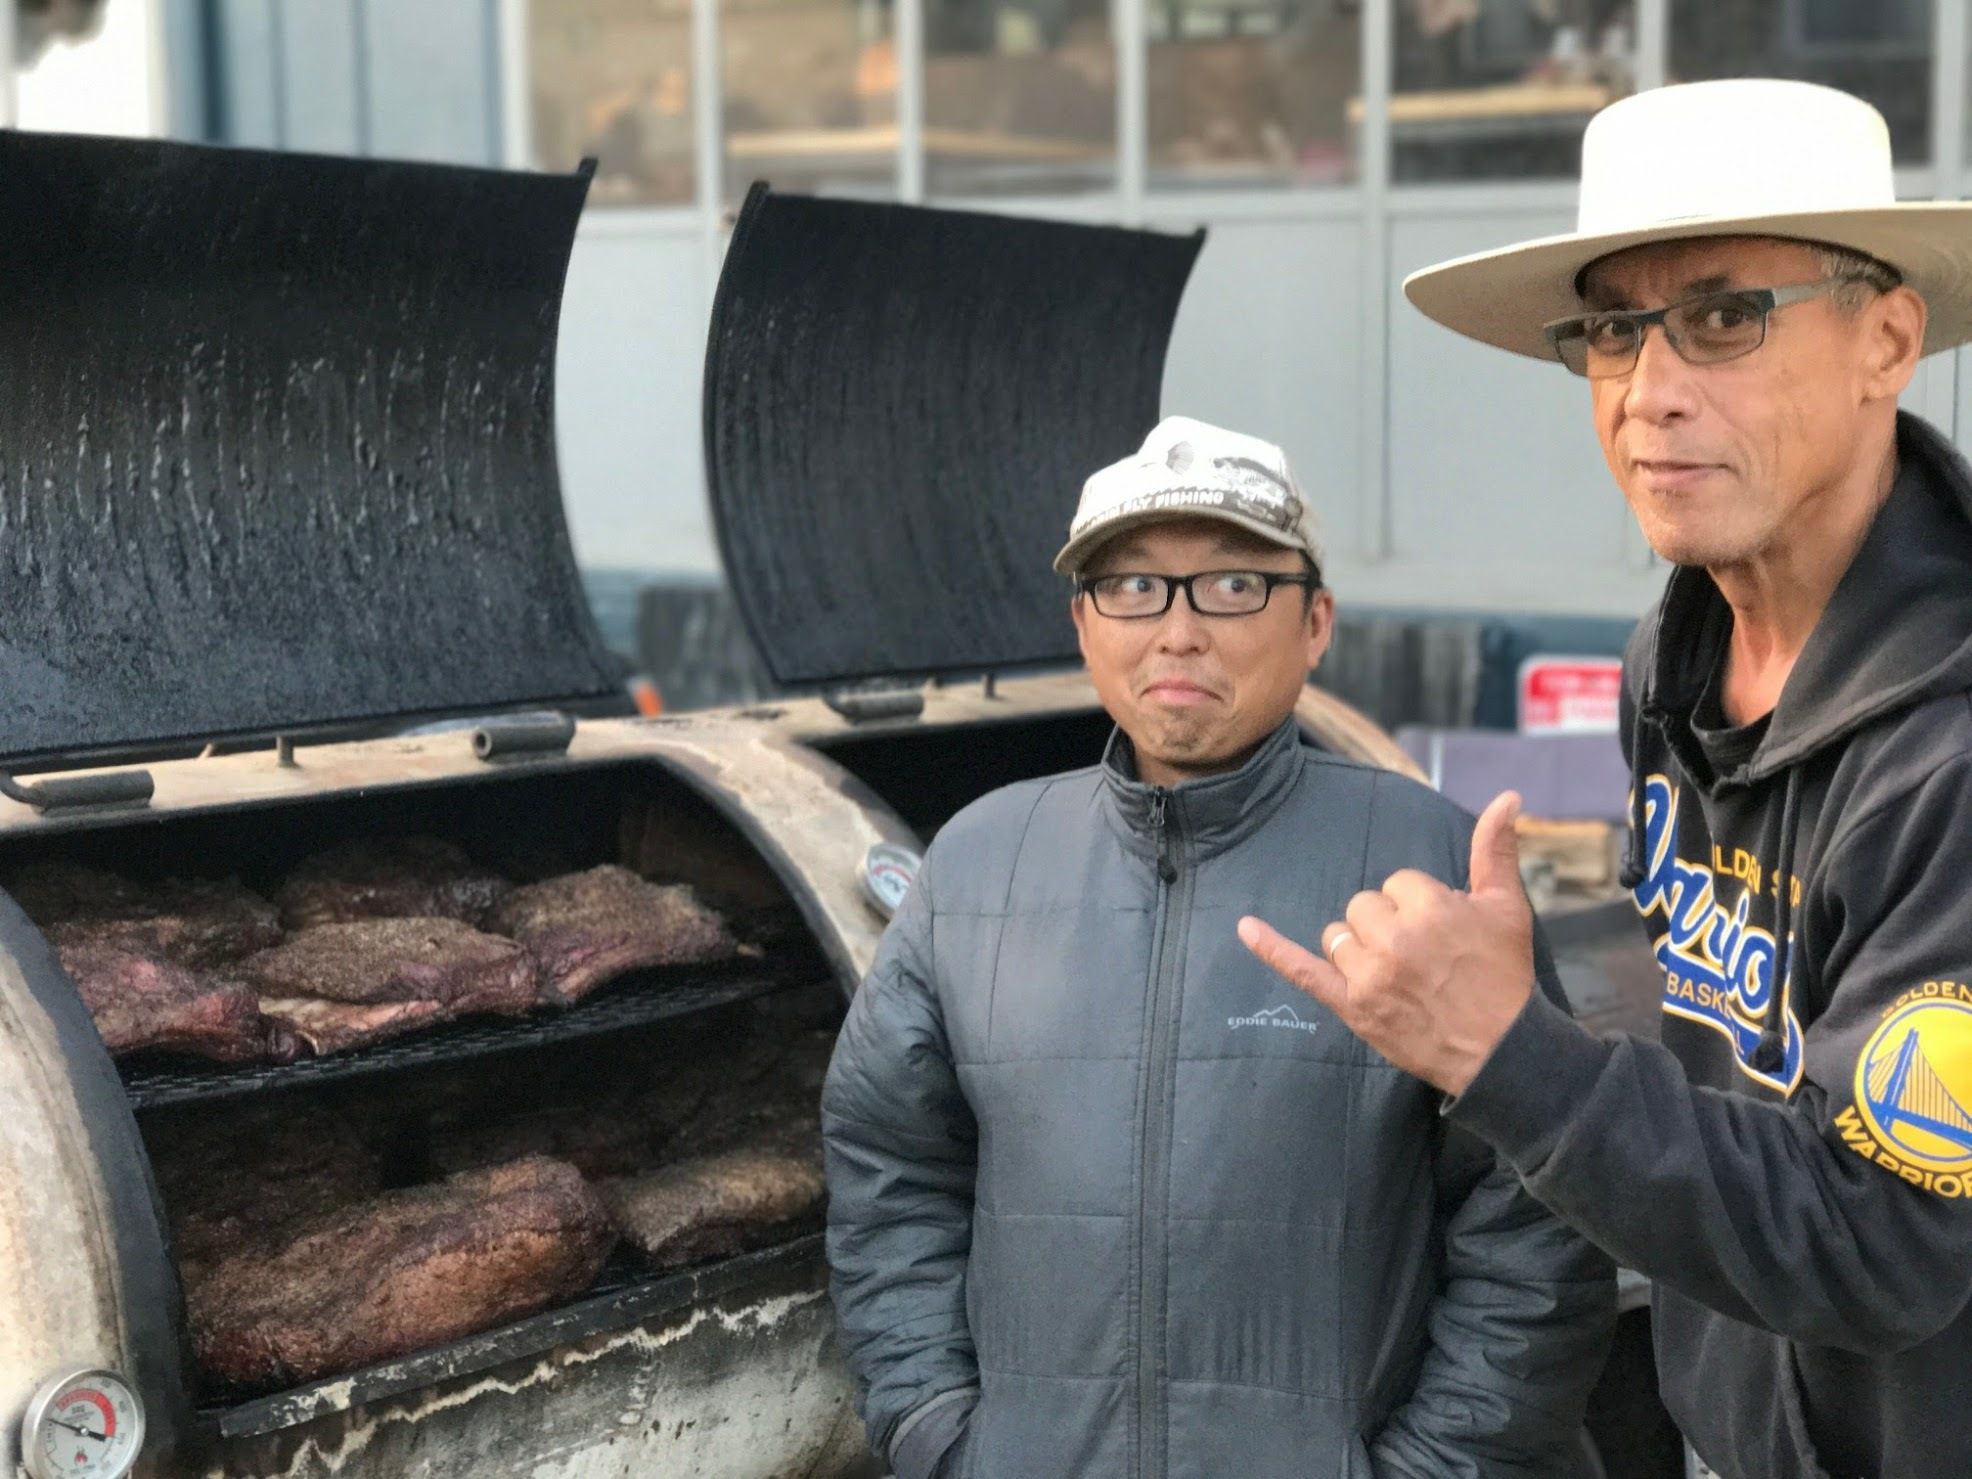 Lau (left) stands in front of a smoker with his friend Harry Pali